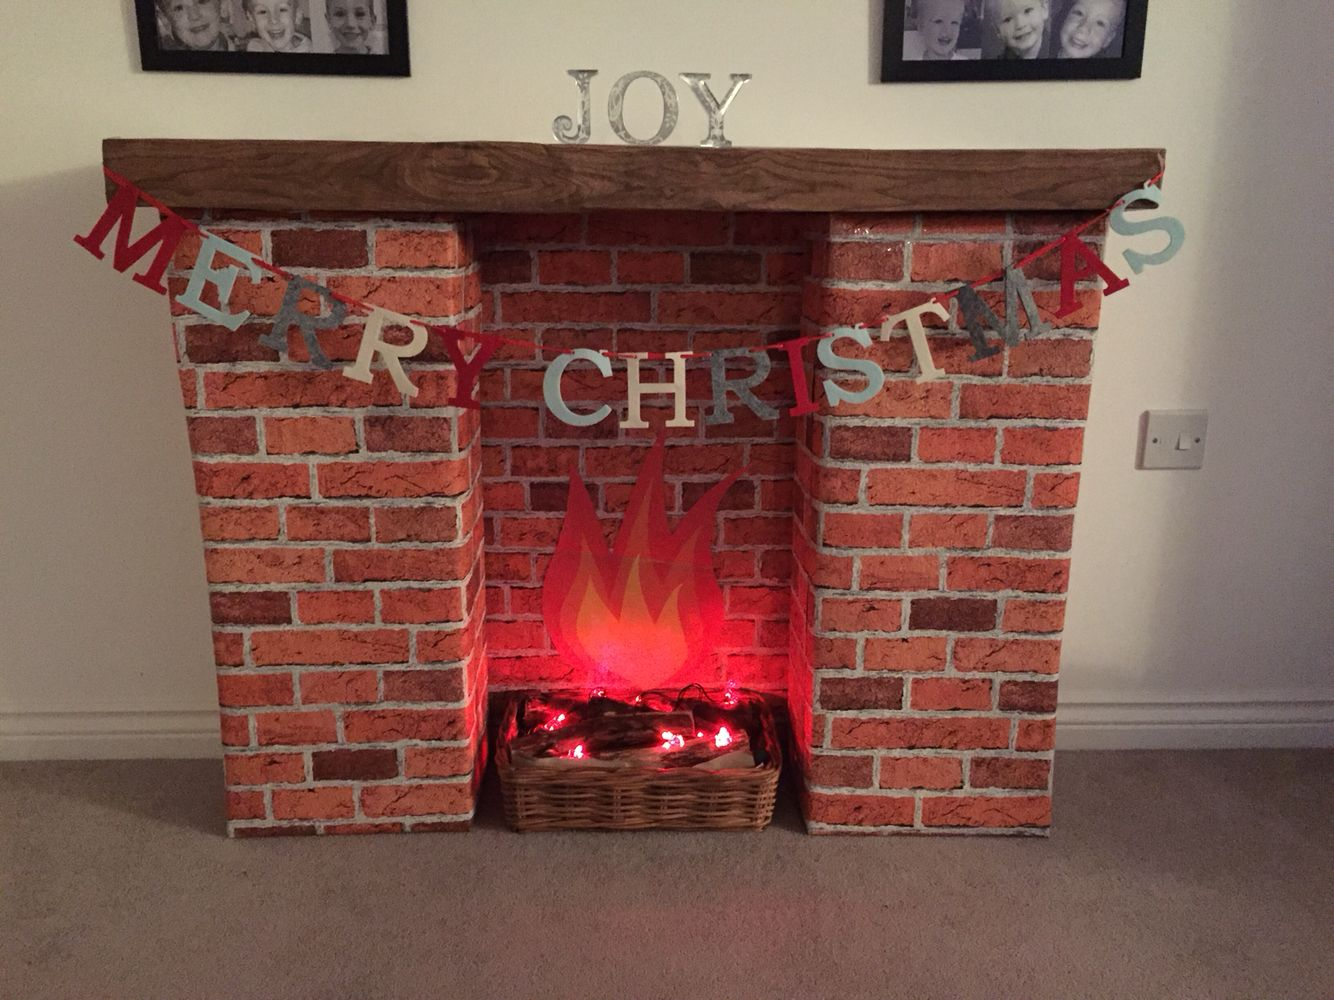 Fake Fireplaces For Decoration How To Make A Fake Christmas Fireplace Lovely Fake Christmas